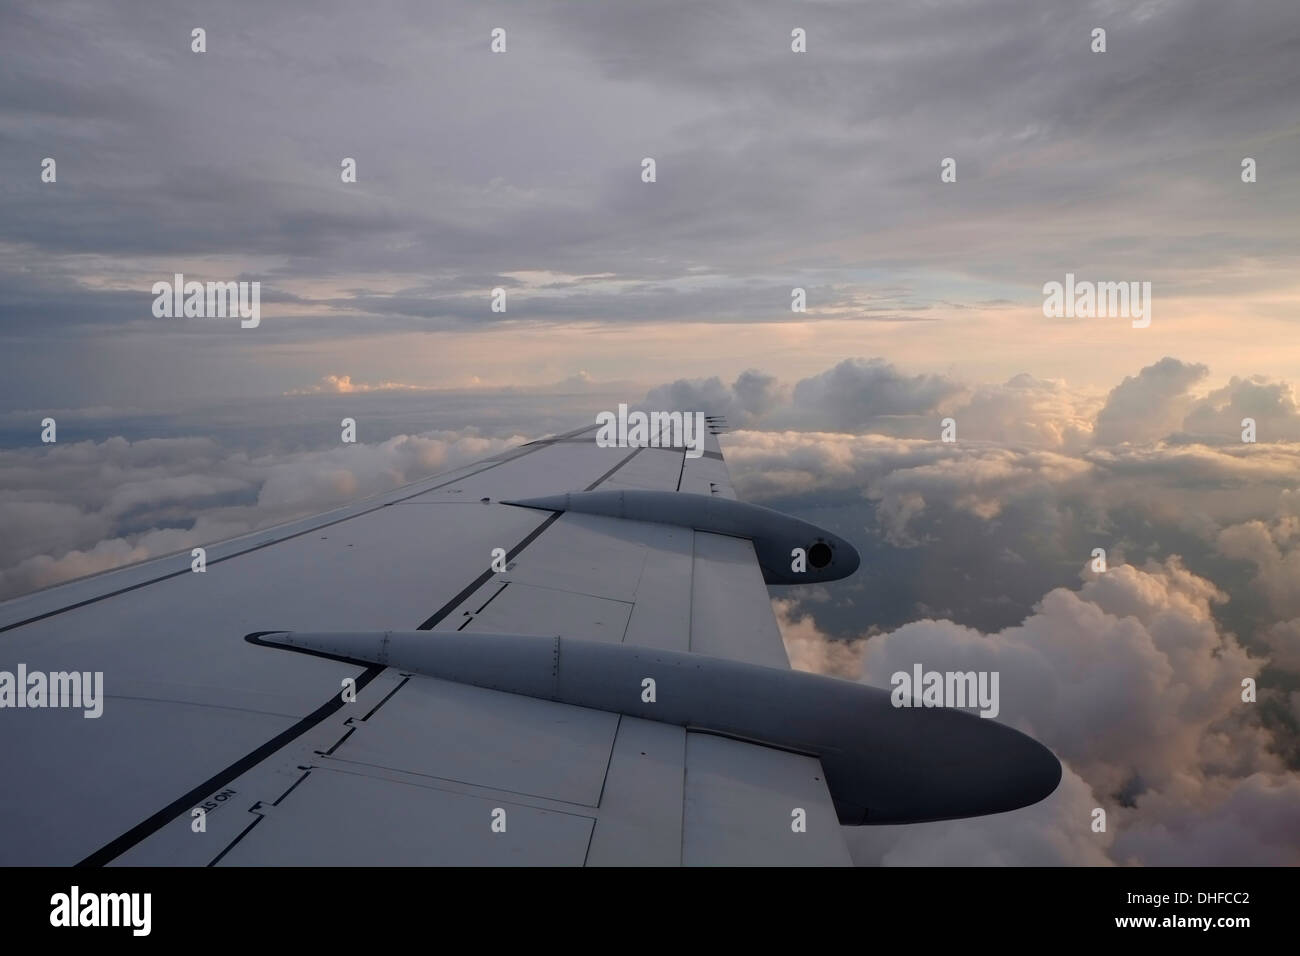 Airplane winglet high up in the sky - Stock Image